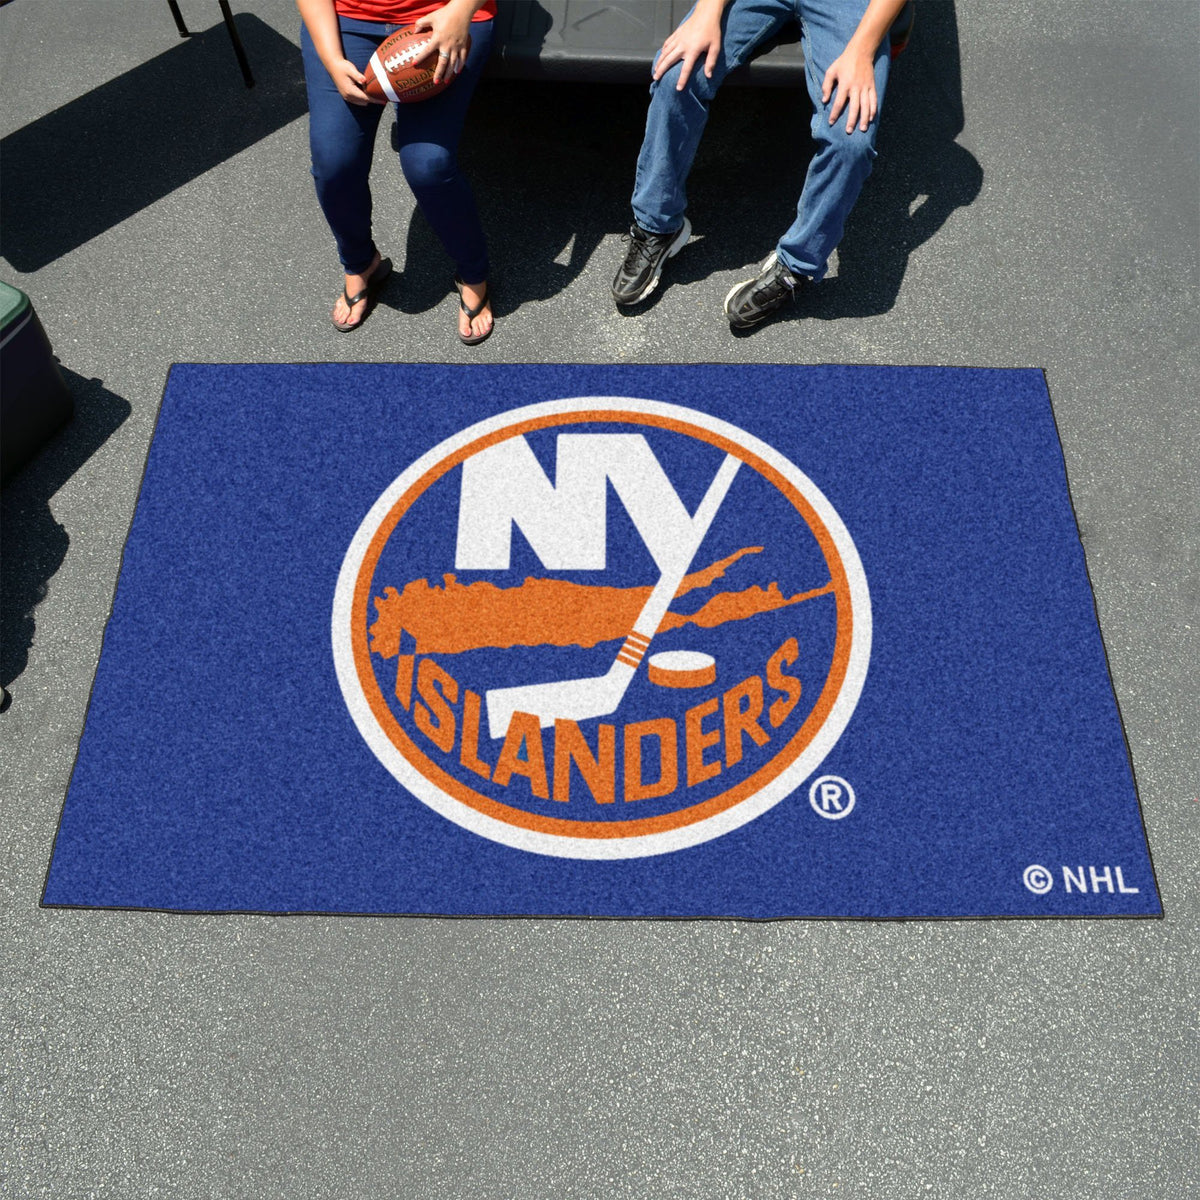 NHL - Ulti-Mat NHL Mats, Rectangular Mats, Ulti-Mat, NHL, Home Fan Mats New York Islanders